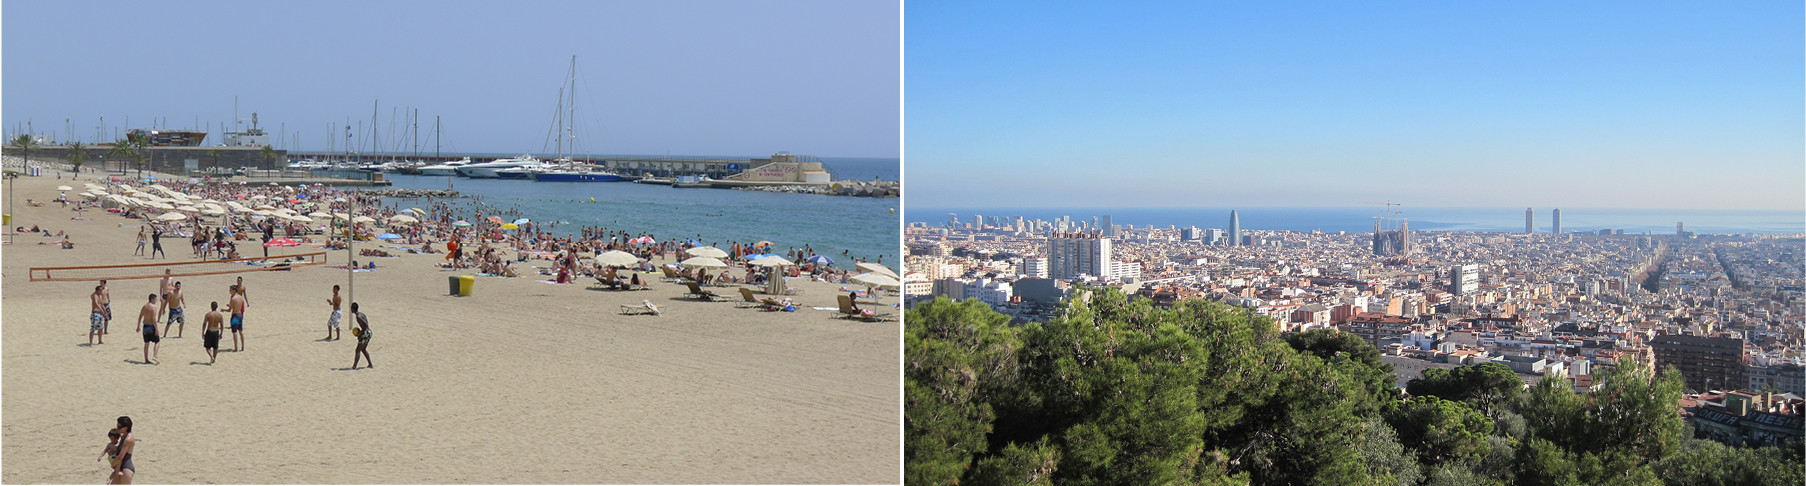 Image-Barcelona-Beach-City